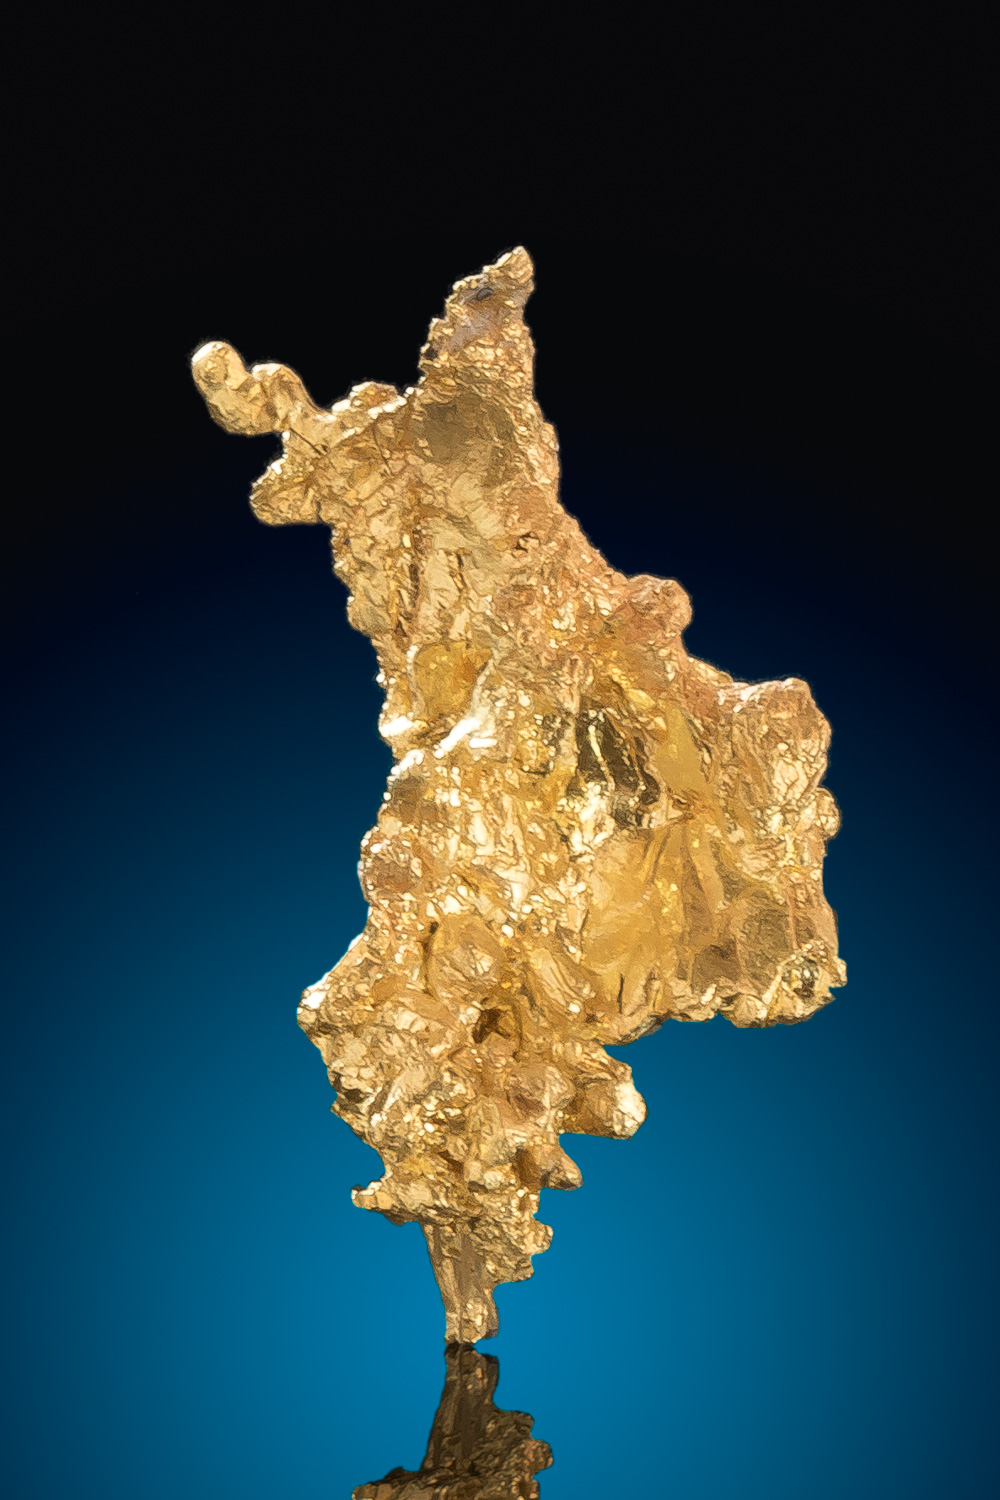 Beautiful Yellow Crystalline Gold Nugget - Eagles Nest Mine